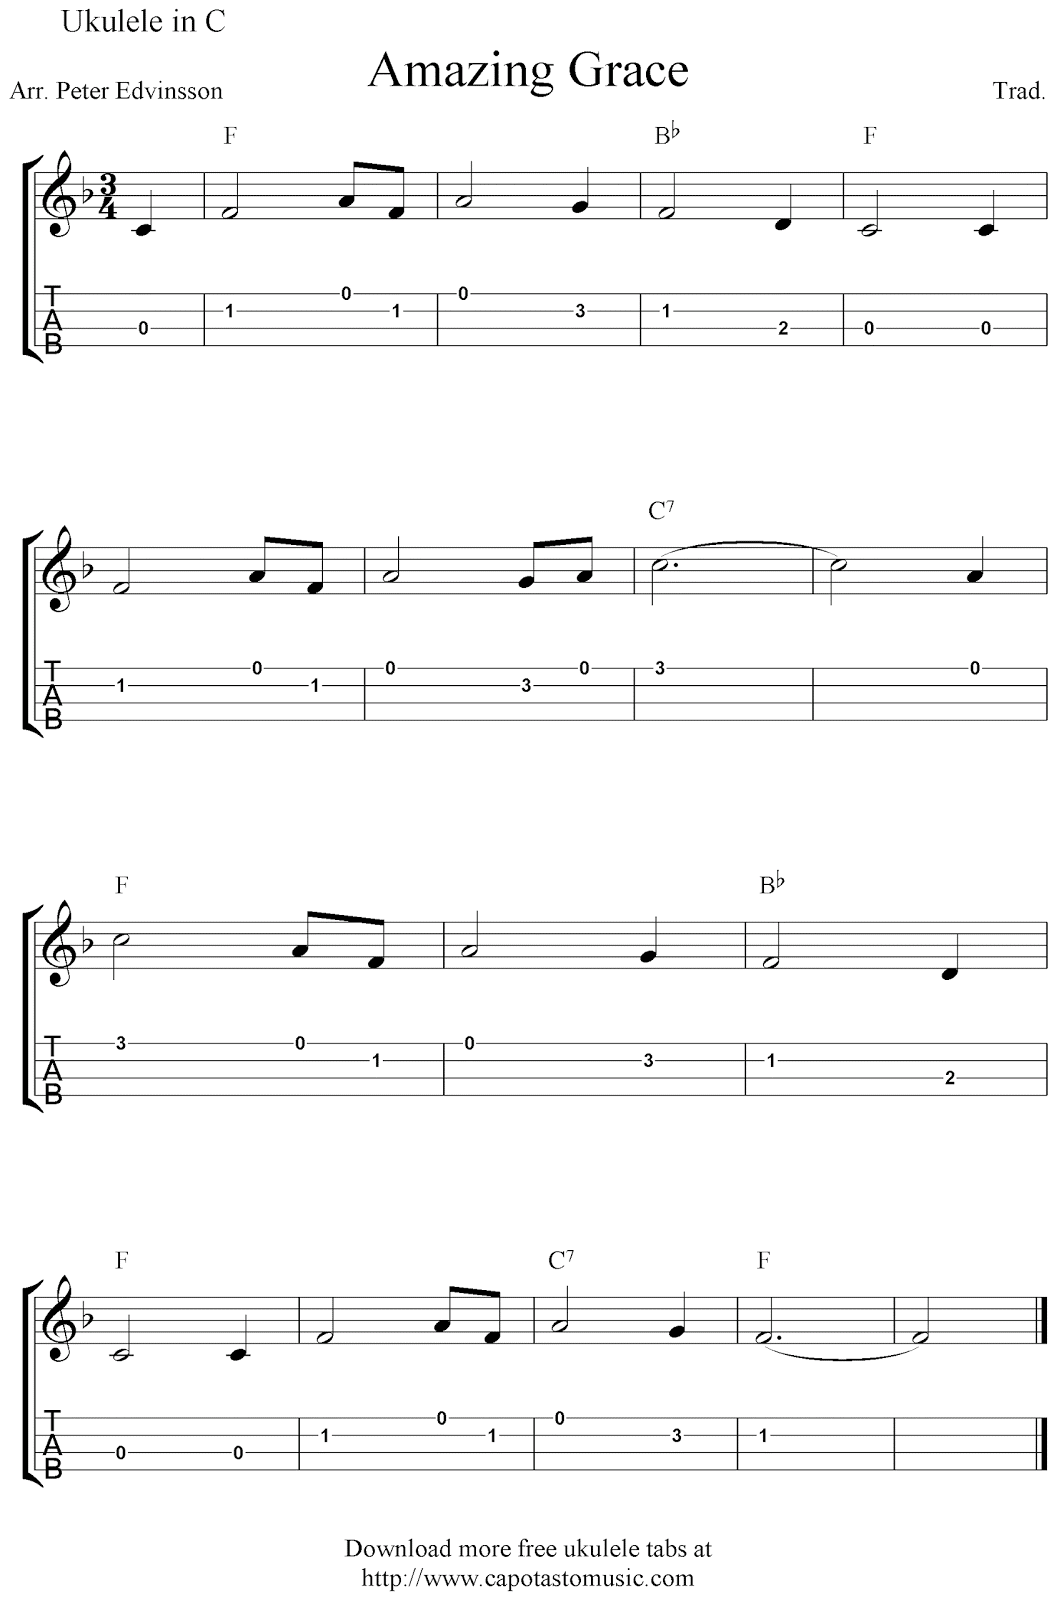 image relating to Free Printable Piano Sheet Music for Amazing Grace called Unbelievable Grace, free of charge ukulele tabs sheet new music